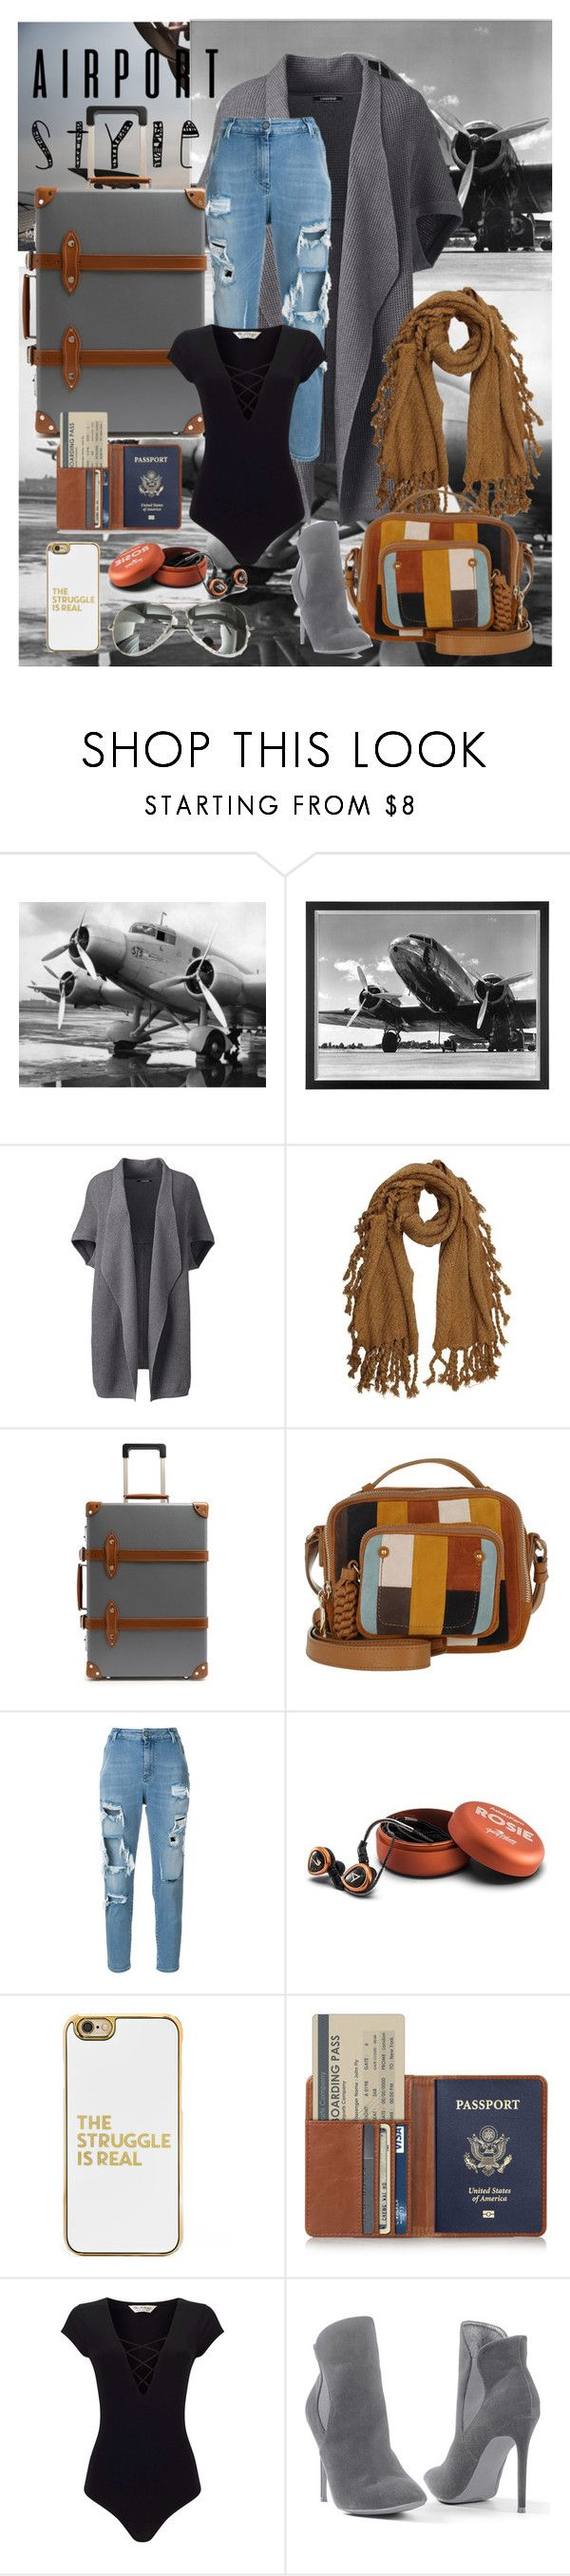 """On board!!"" by nova5ta5ia ❤ liked on Polyvore featuring Eichholtz, Lands' End, Globe-Trotter, See by Chloé, Diesel, Astell & Kern, BaubleBar, Miss Selfridge, Venus and airportstyle"